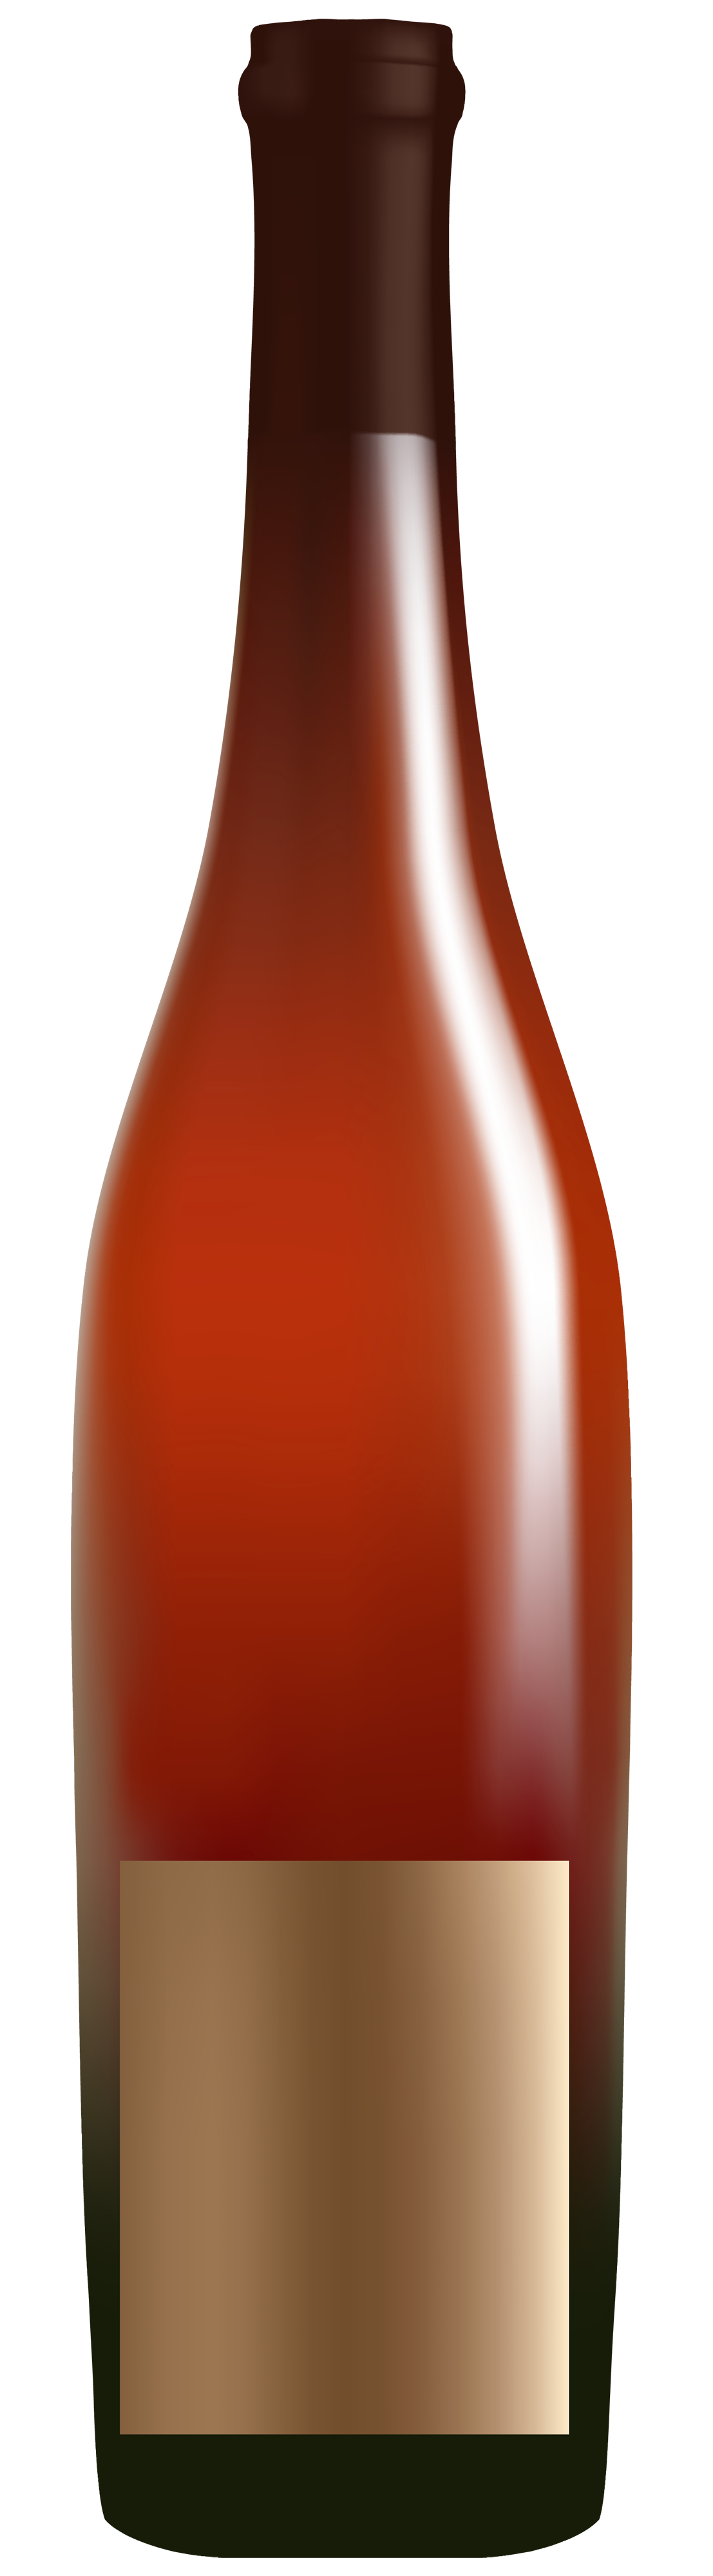 Red clipart best web. Alcohol bottle png